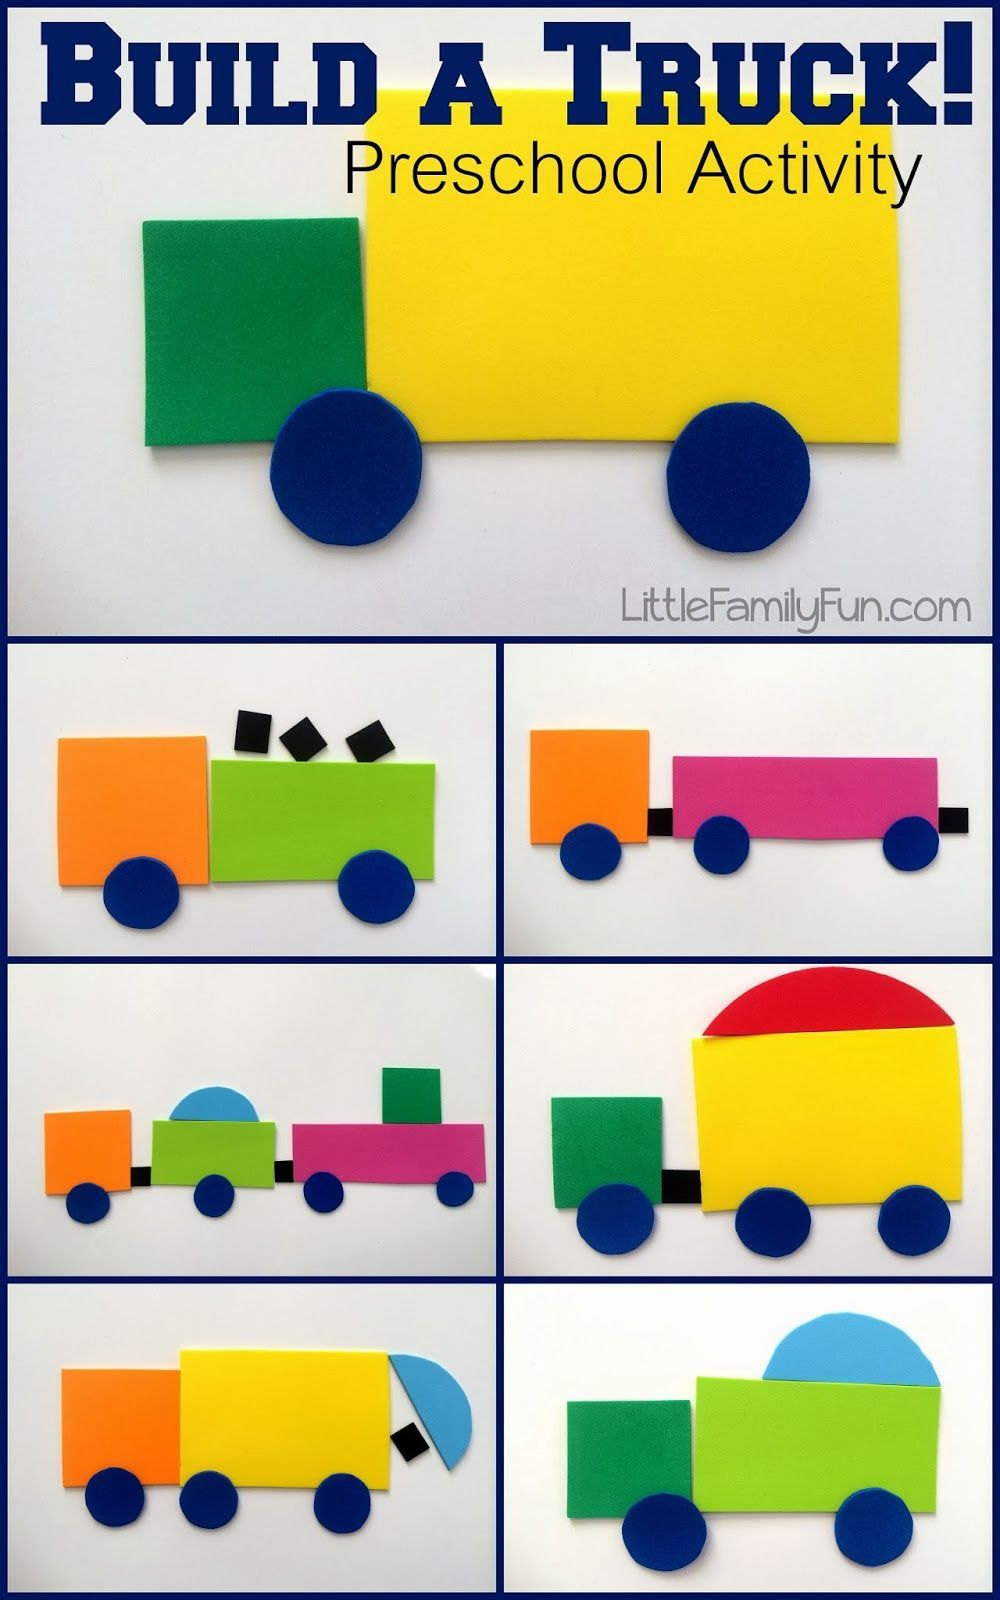 Build a truck fun way to review shapes with preschoolers Where to find a builder